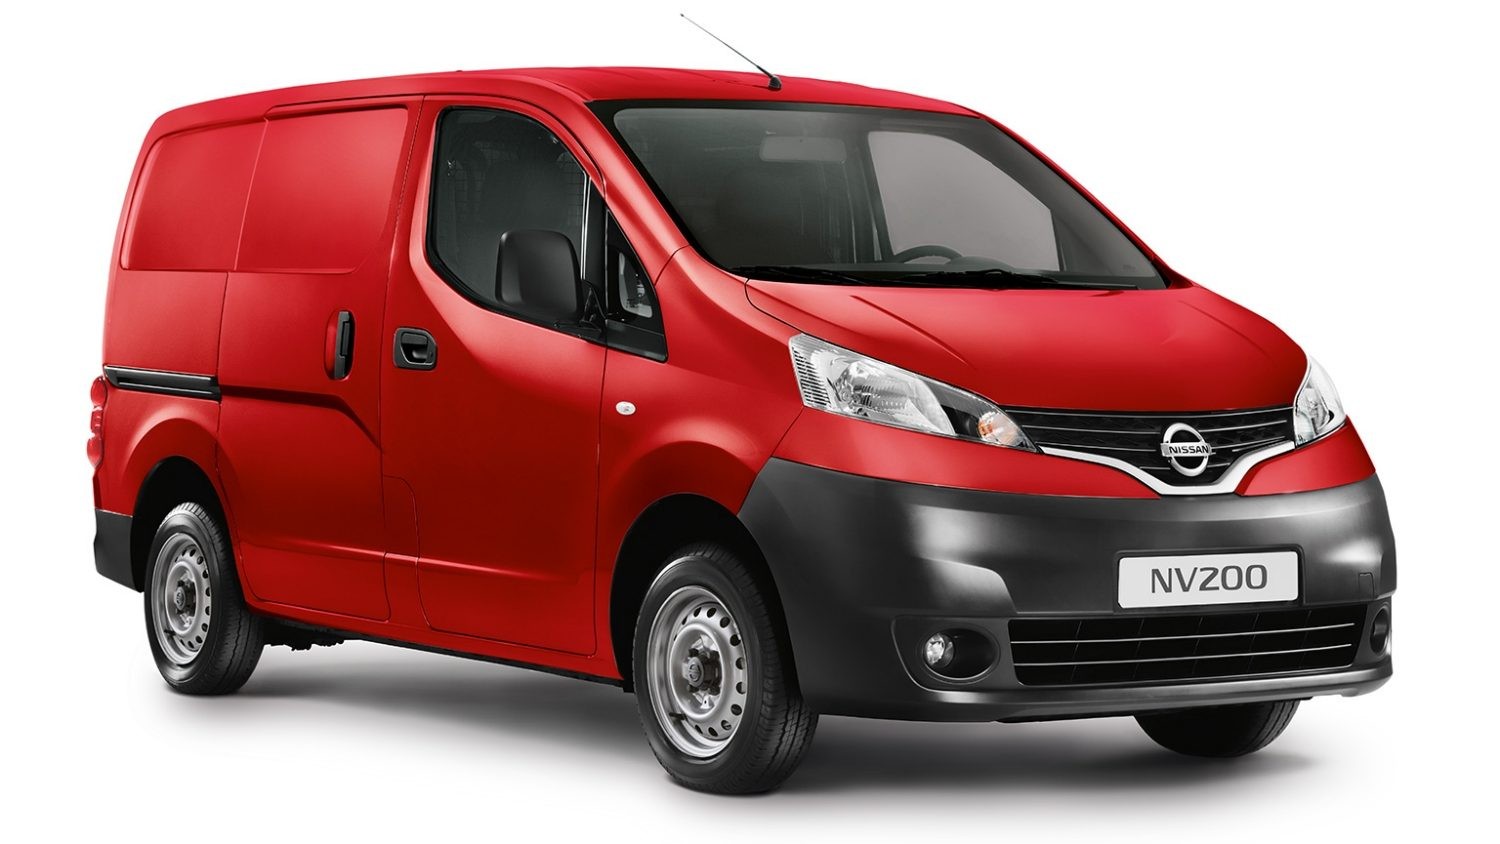 offres nissan nv200 fourgon utilitaire nissan. Black Bedroom Furniture Sets. Home Design Ideas